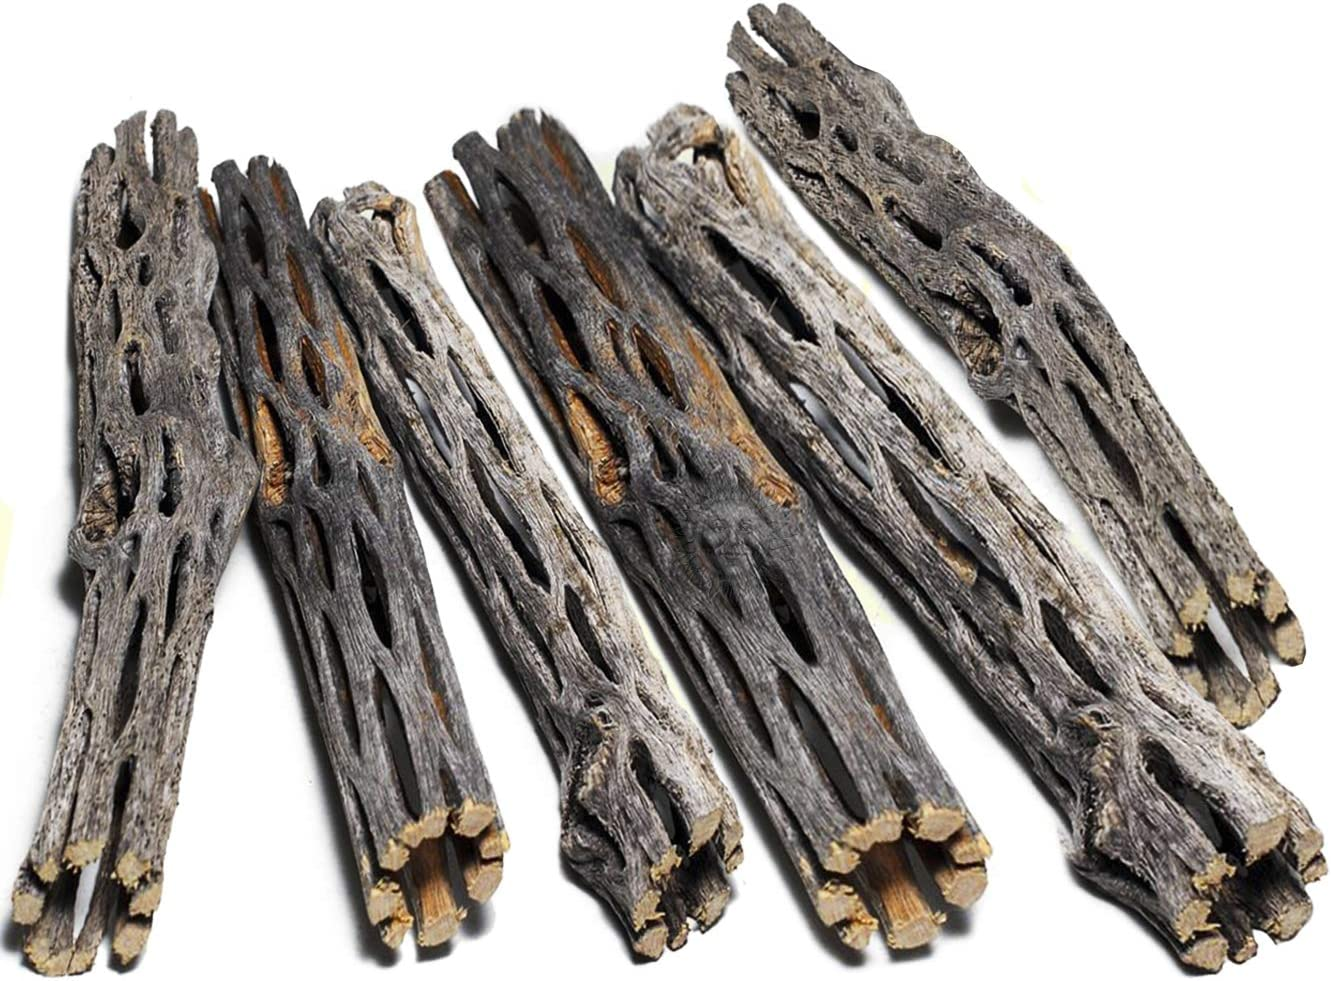 SunGrow Cholla Wood, Aquarium Decoration and Chew Toys for Small Pets, Artistic Home-Decor, Added Nutrition, Long Lasting Driftwood, for Playing and Hiding